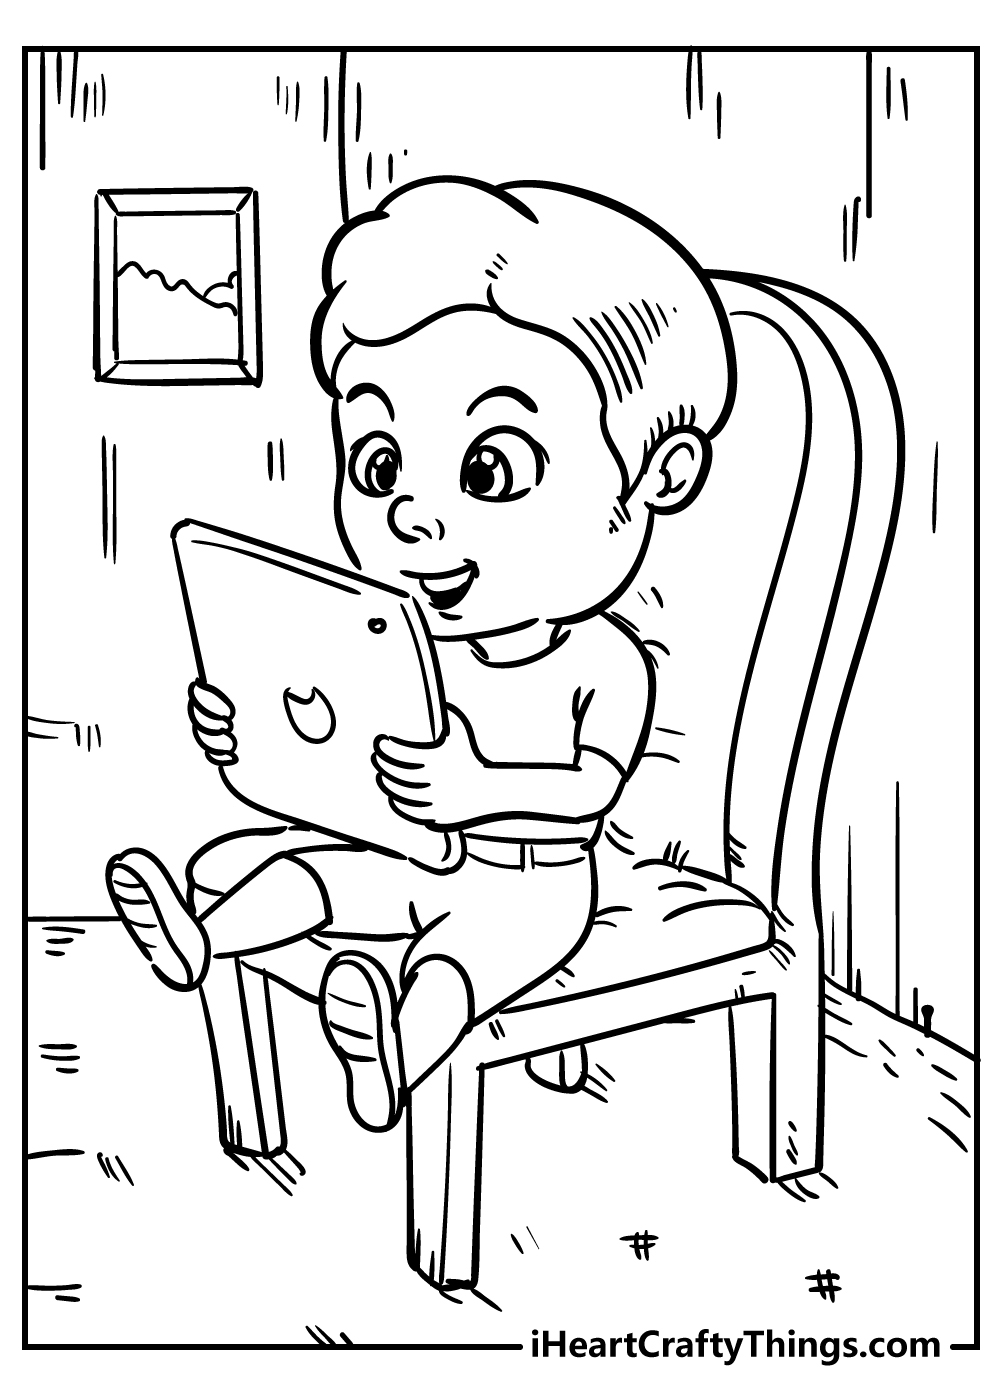 for boys coloring pages free printable